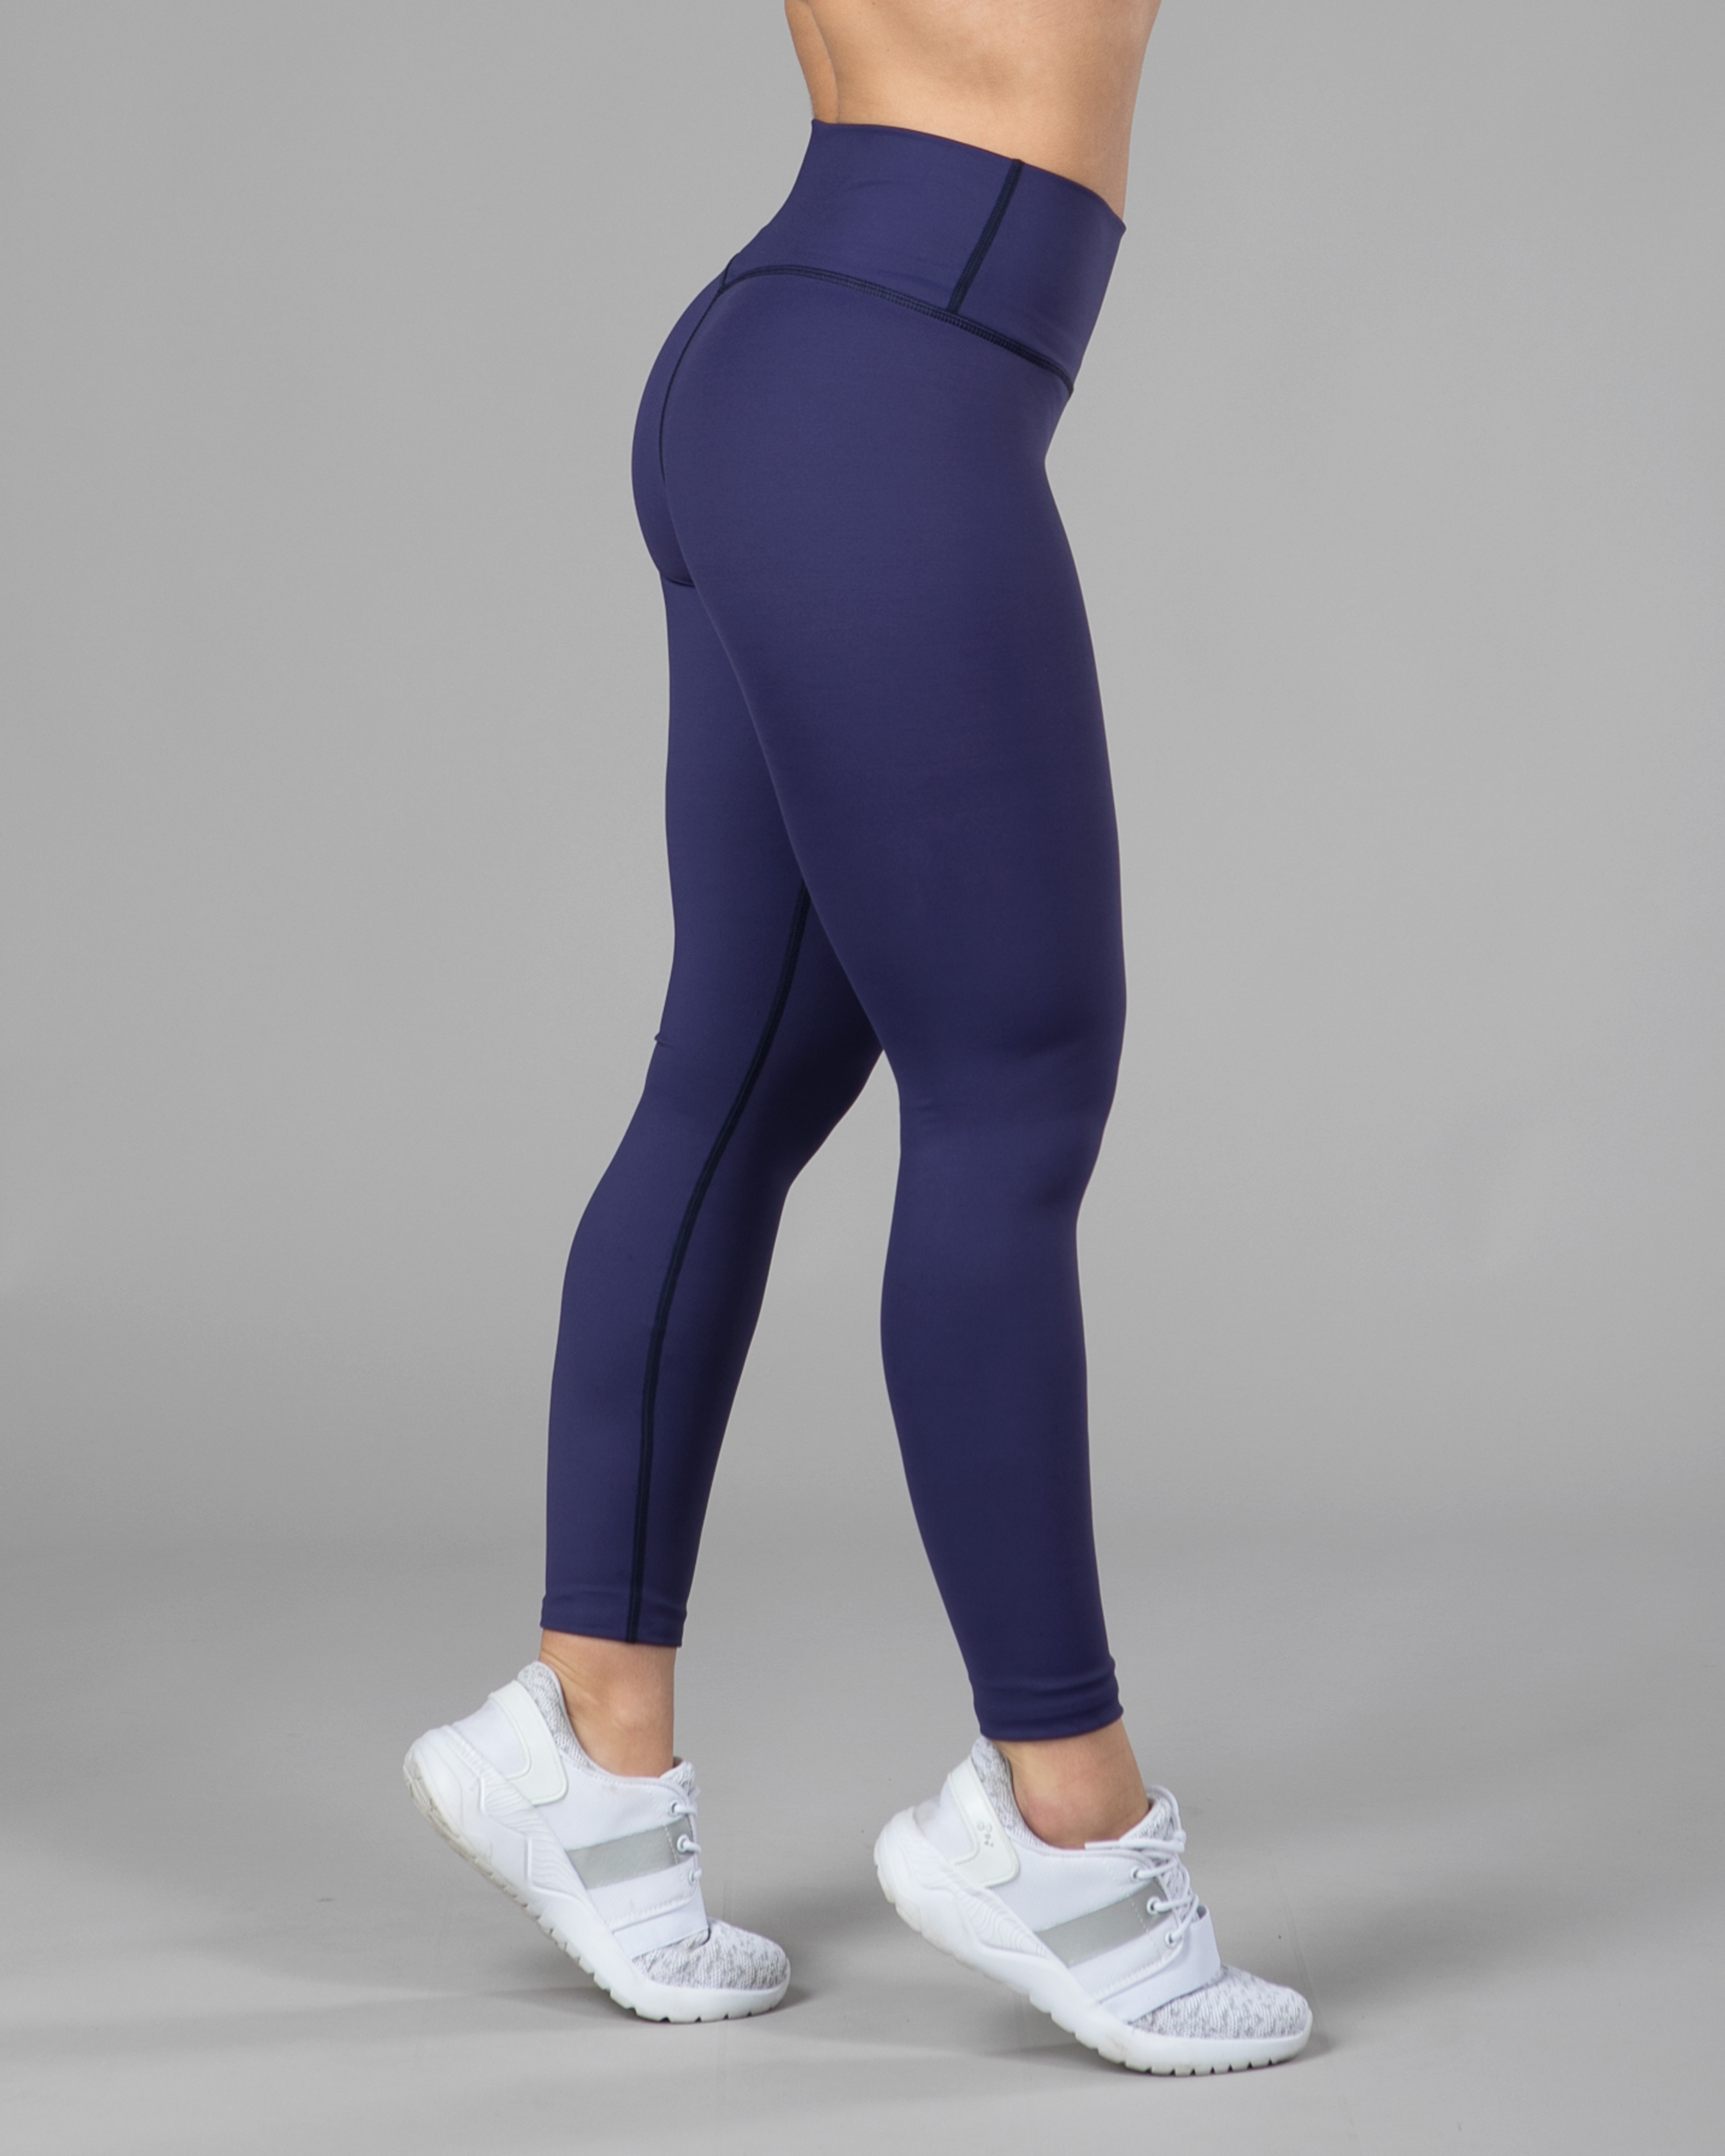 Discover Navy Blue leggings at Zazzle! Use your own images and text or choose from thousands of patterns and designs. Start your search today!